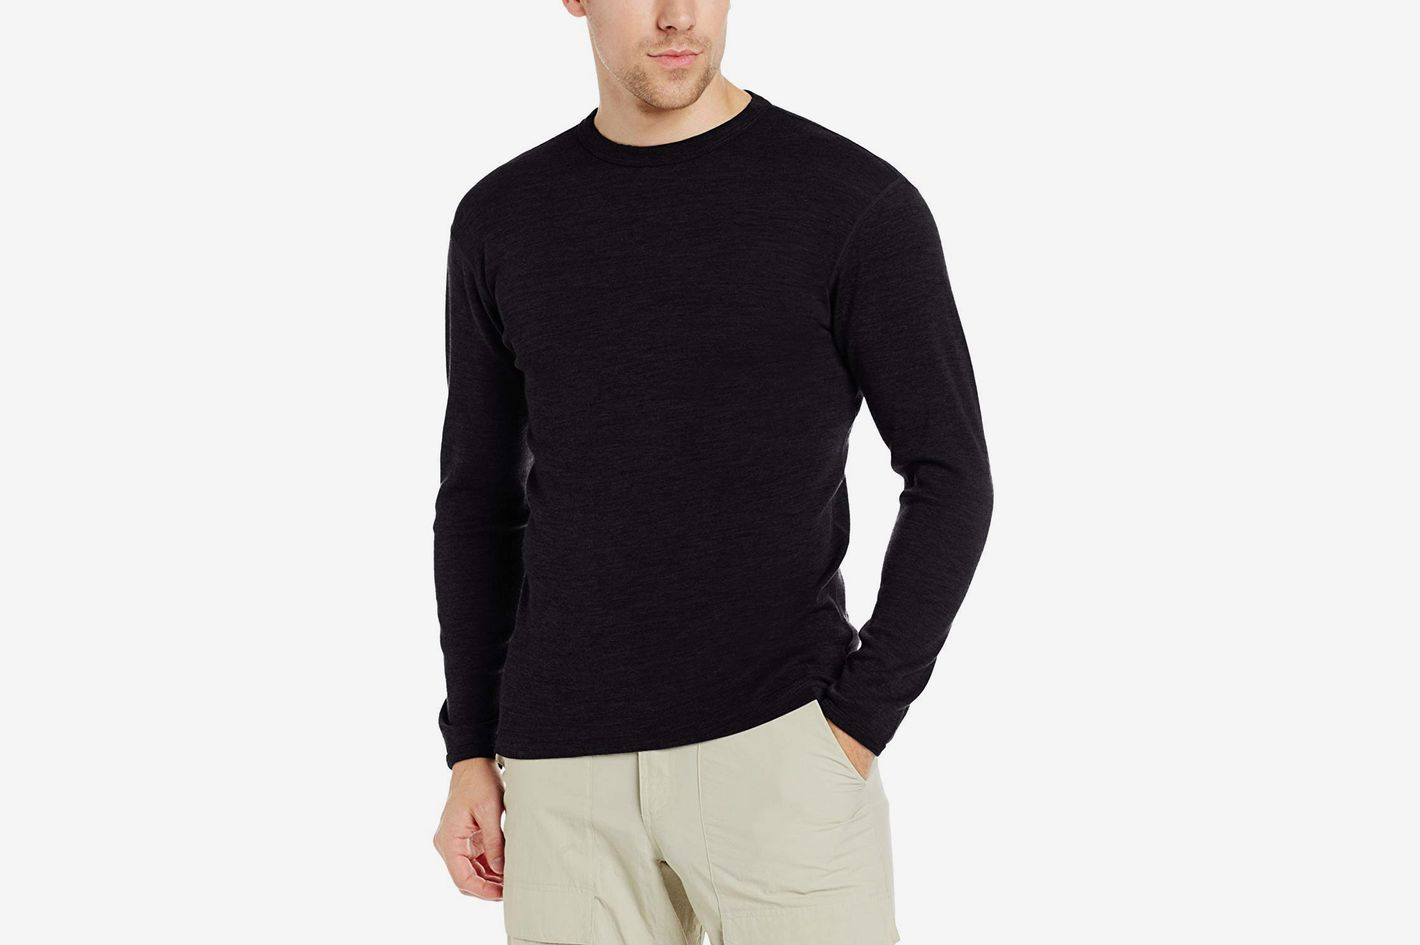 f7a619eeec2e Minus33 Merino Wool Men s Chocorua Midweight Crew at Amazon